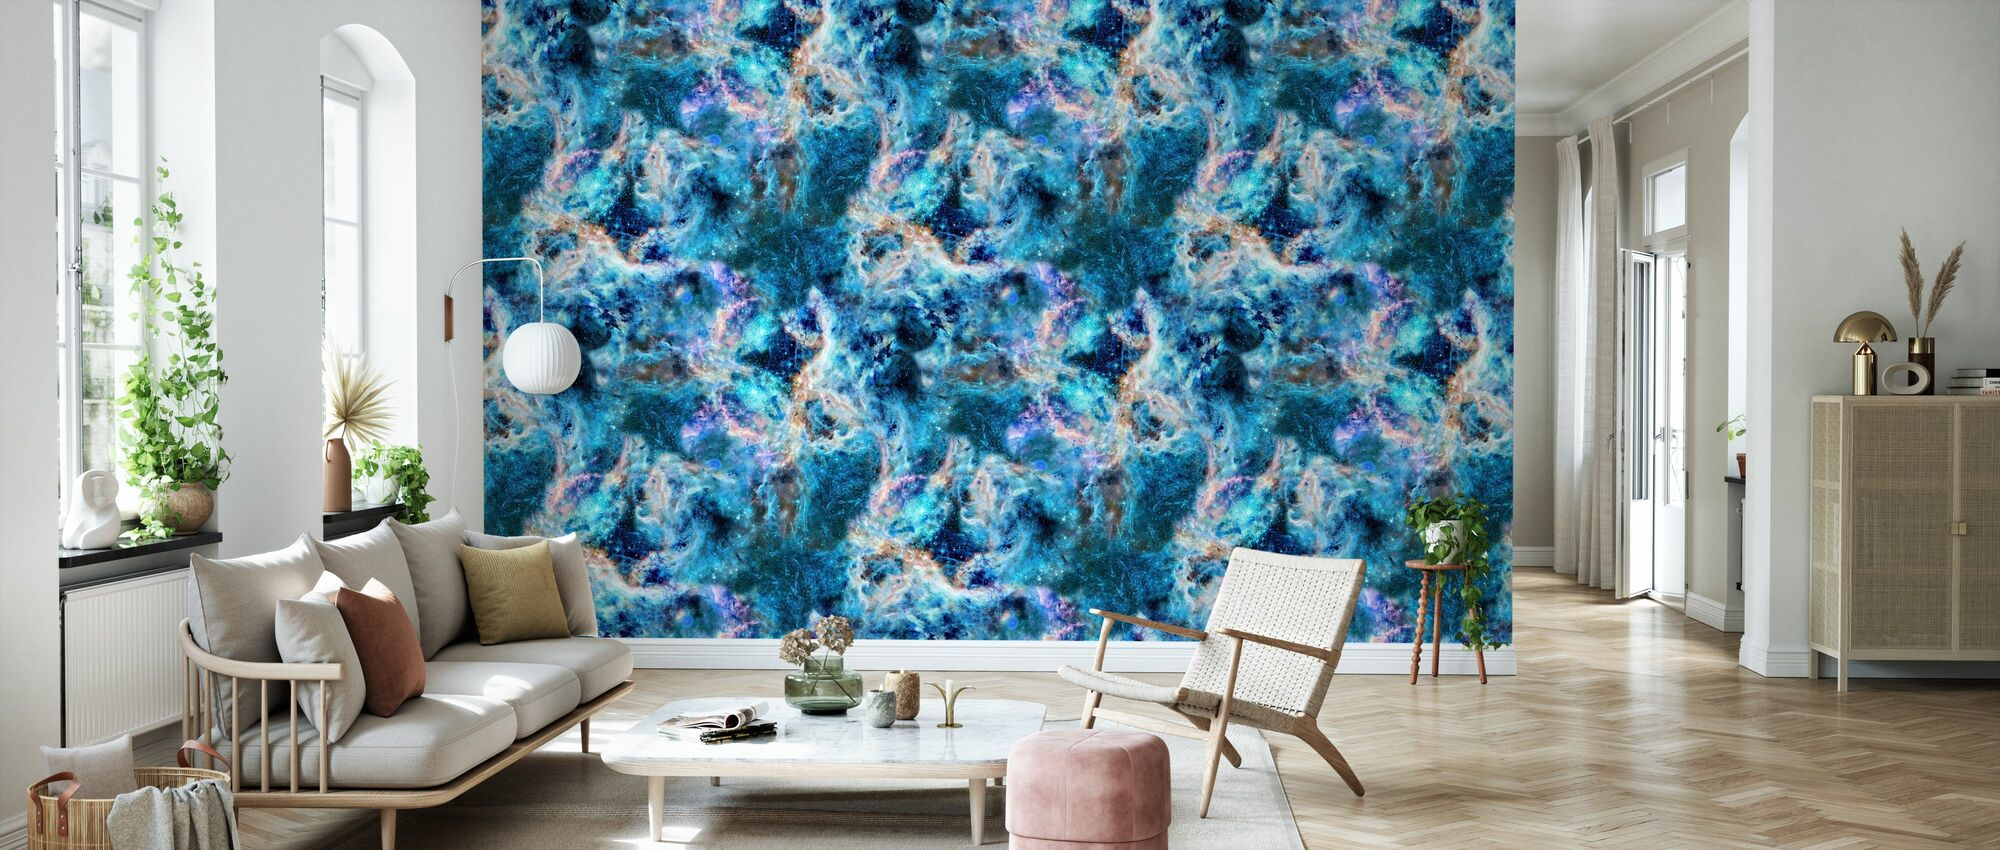 Nebula Saphire - Wallpaper - Living Room